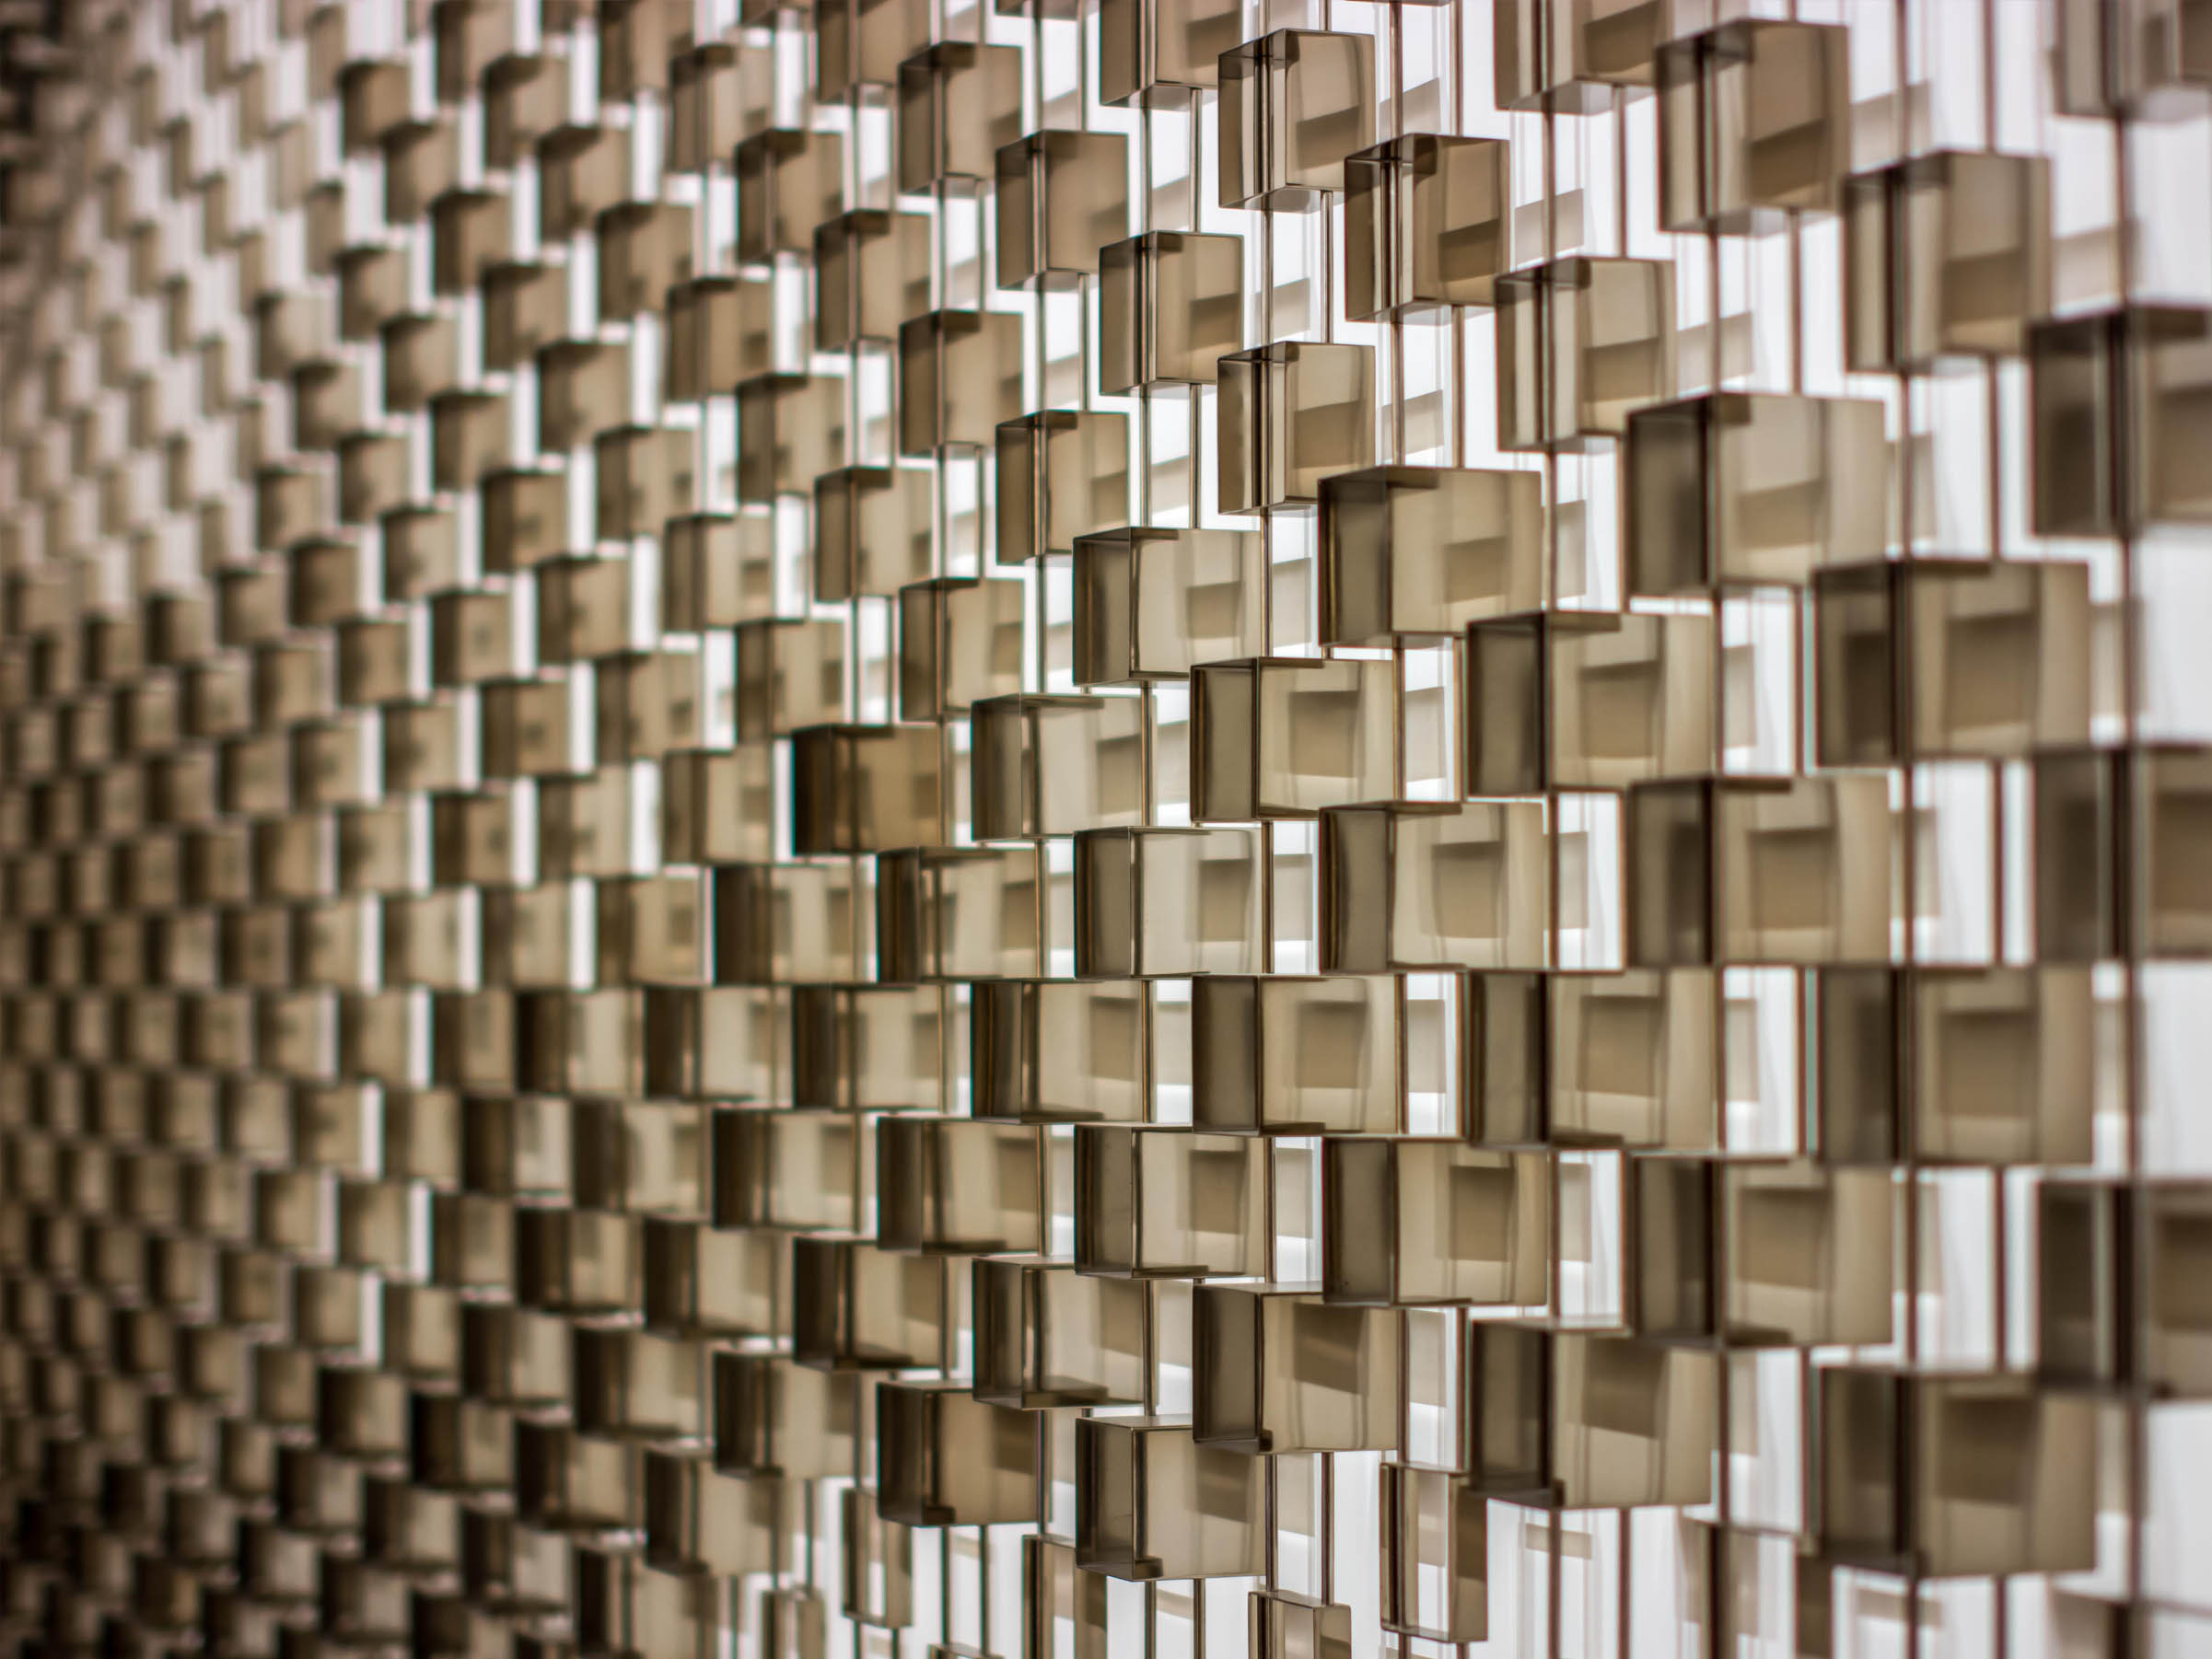 Featured Artists - London-based design practice, Giles Miller Studio, specialises in the development of innovative material, surface and sculptural design projects and artistic installations. Capsule Arts has an ongoing relationship with the studio and we have collaborated on several high profile projects to date.